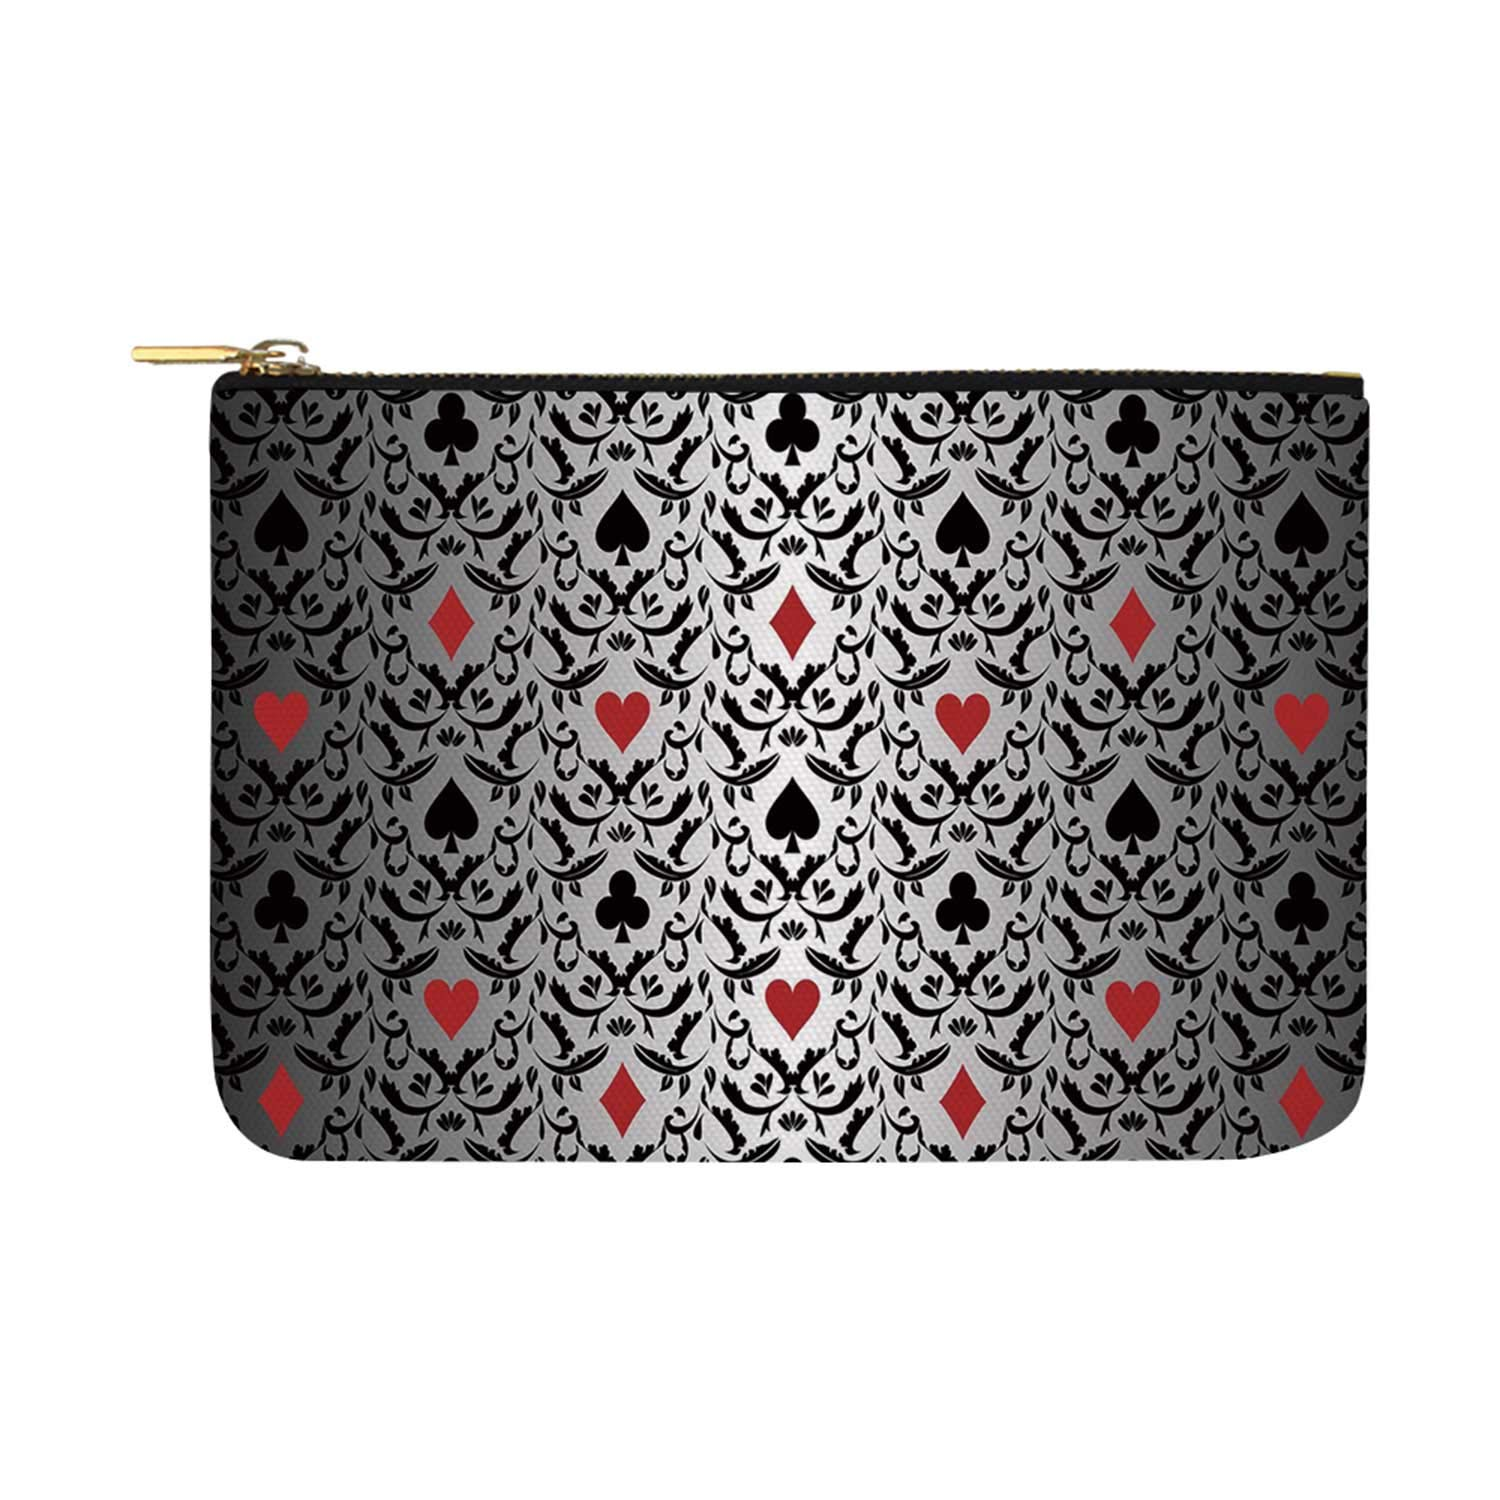 Heels and Dresses Fashion womens canvas coin purse,For shopping